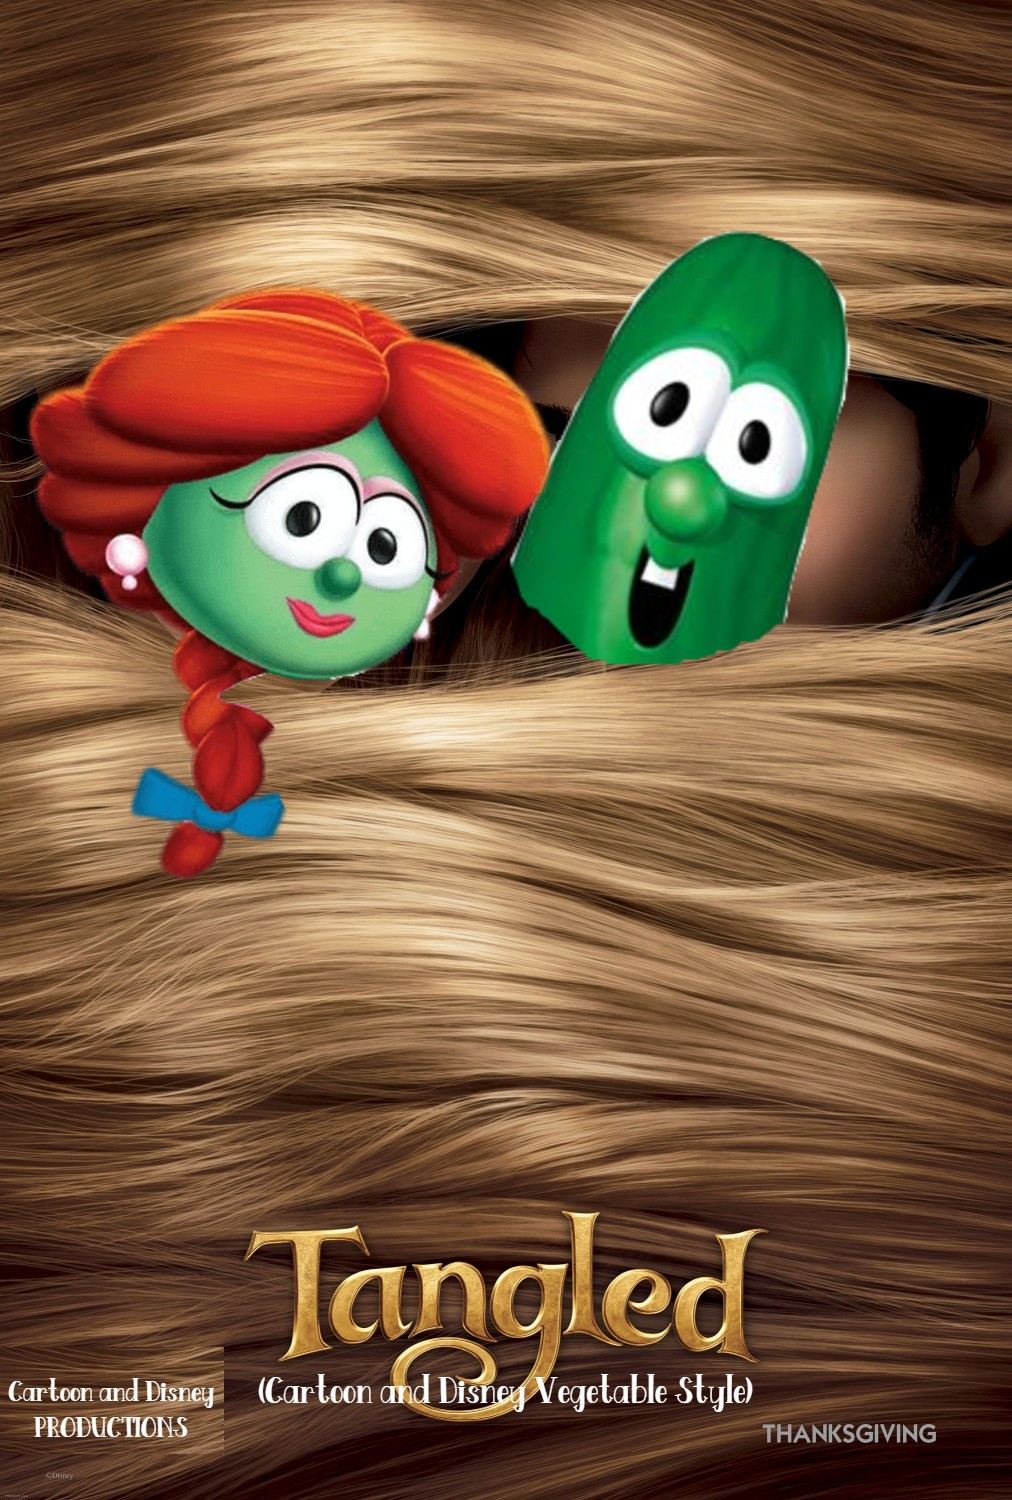 Tangled (Cartoon and Disney Vegetable Style)